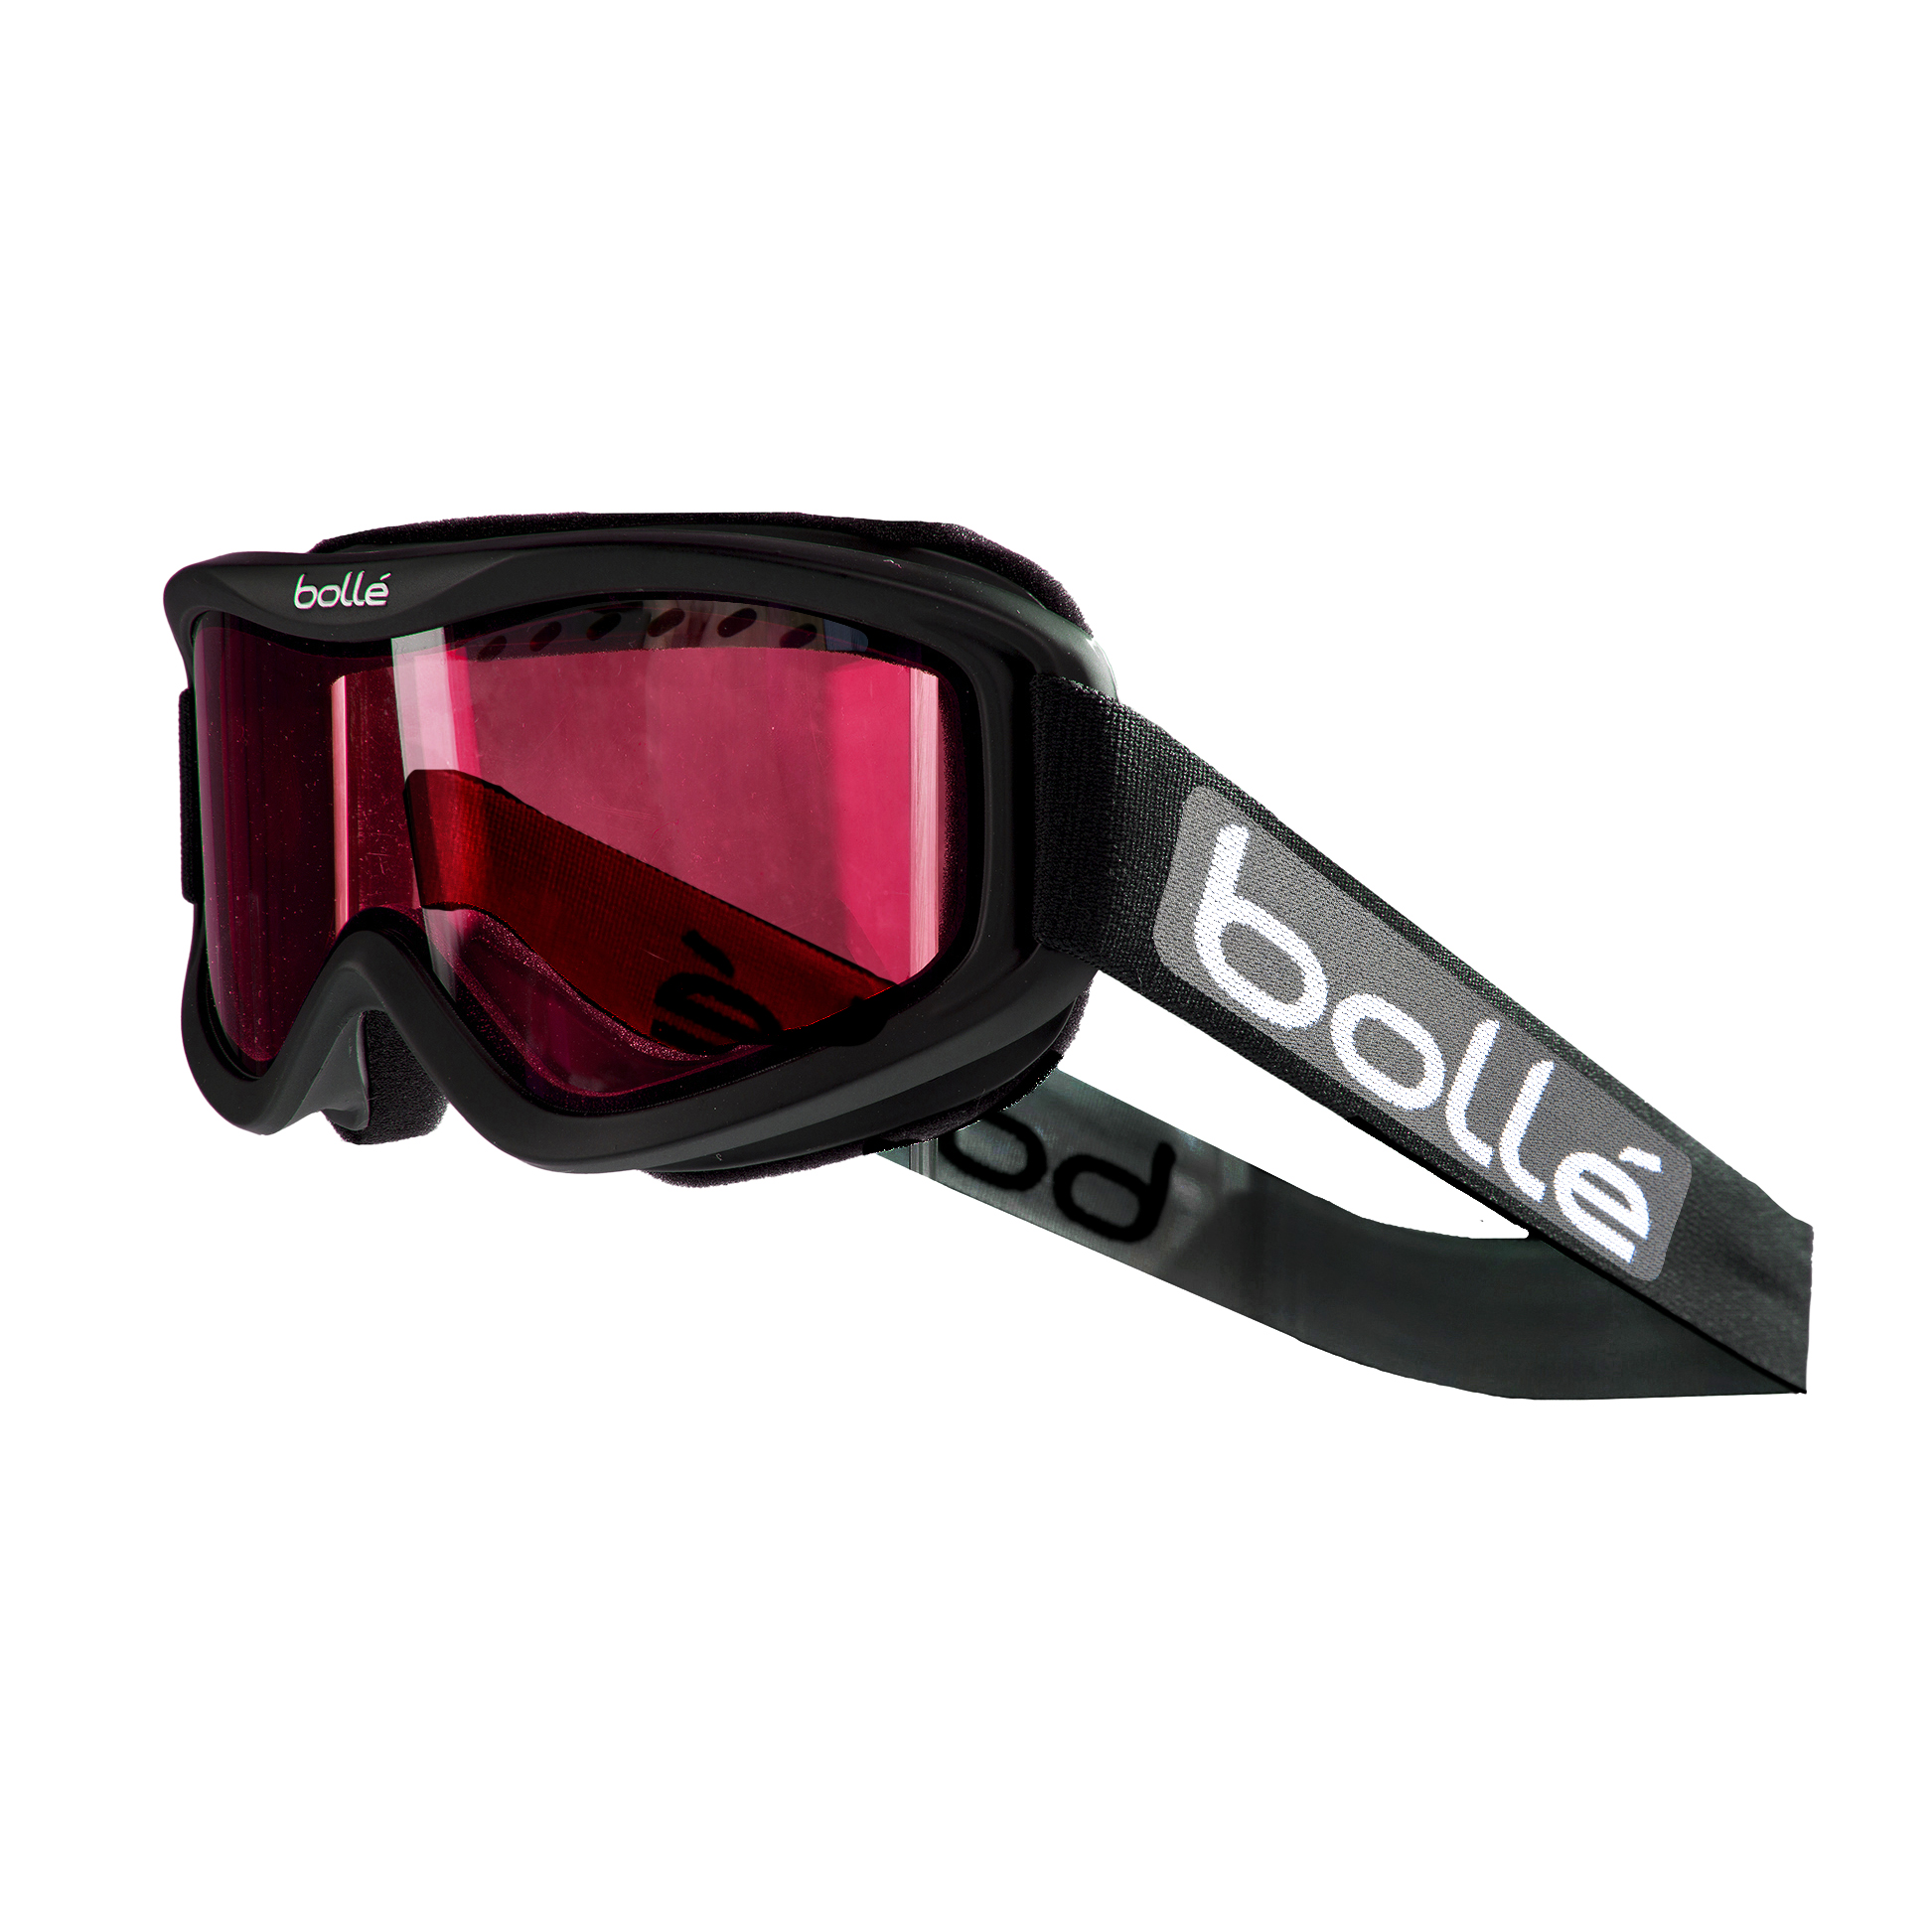 Bolle Carve Snow Goggles (Matte Black, Vermillion Gun) by